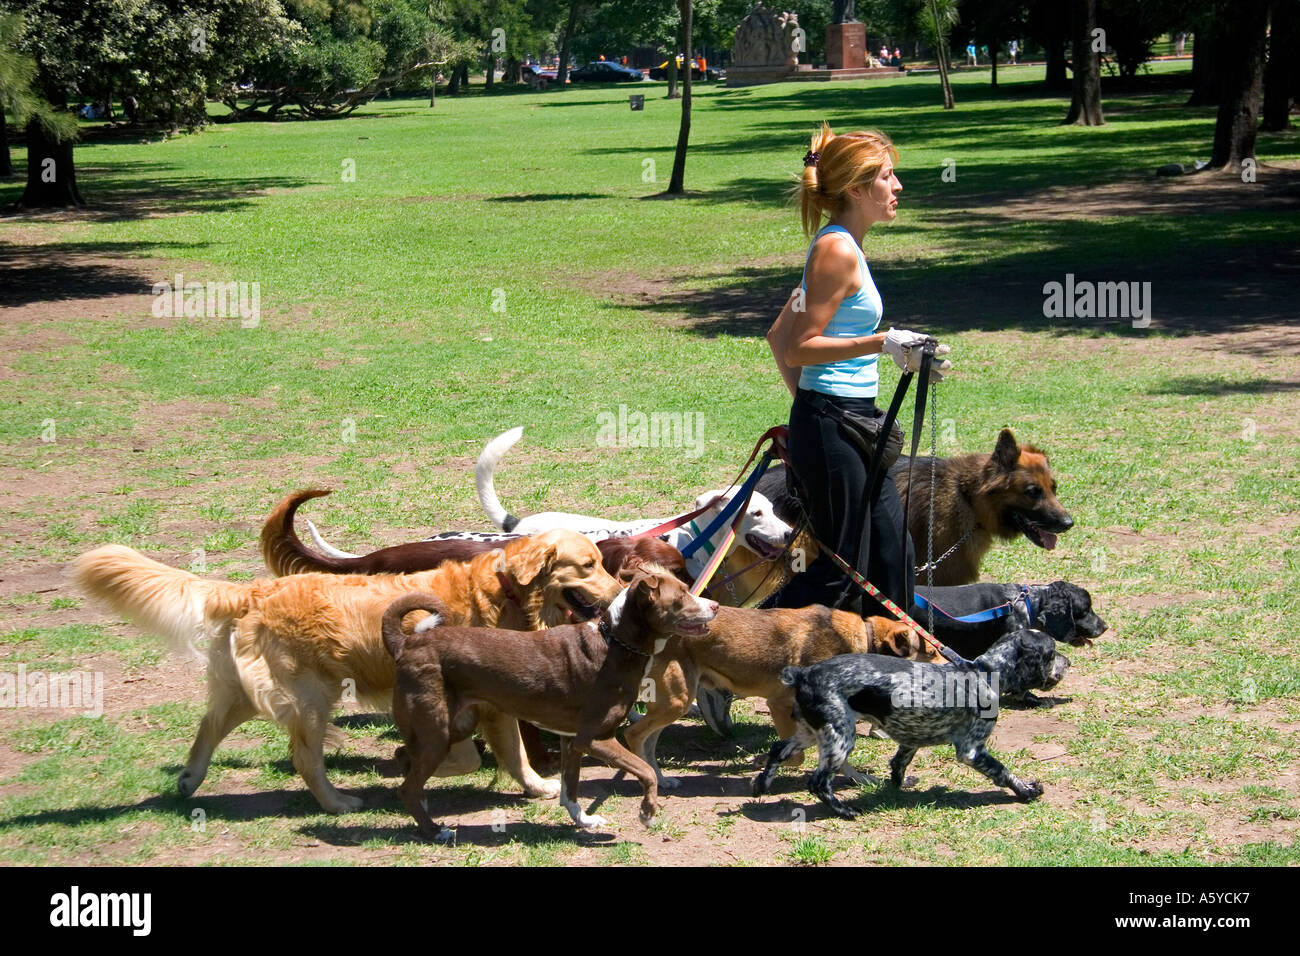 Dog Walker At The Park In The Palermo Area Of Buenos Aires Stock Photo Royal